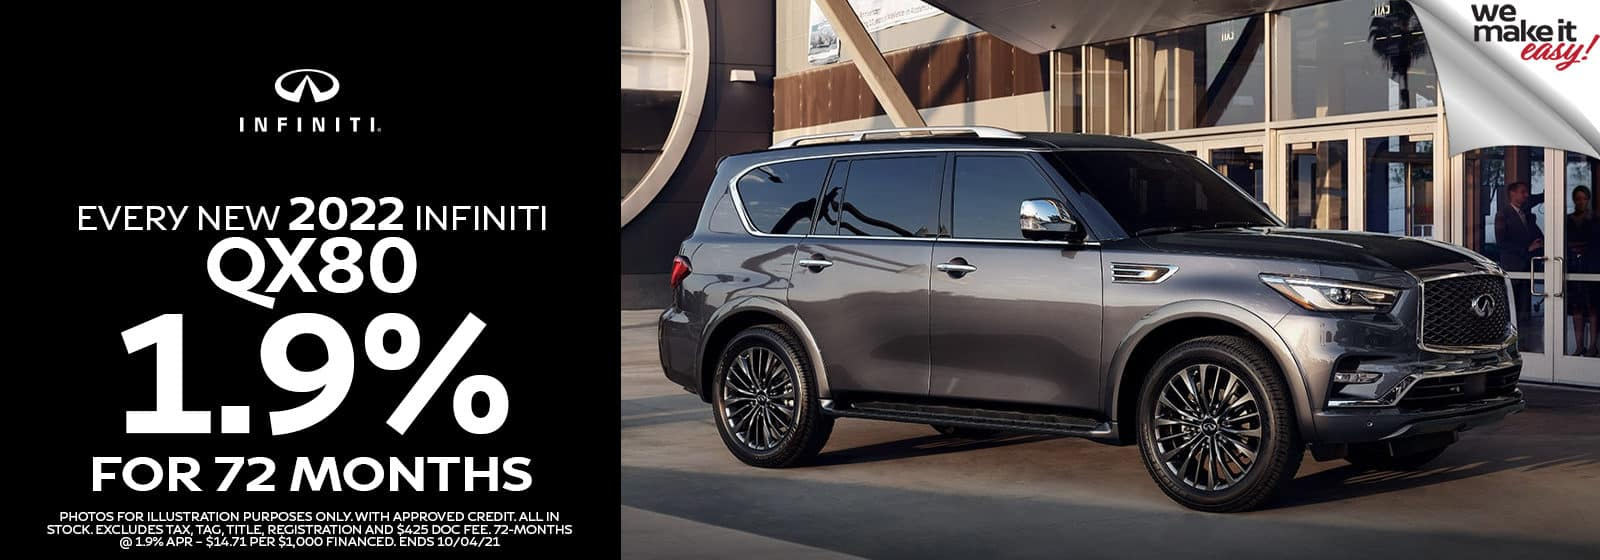 INFINITI QX80 1.9% for 72 Months